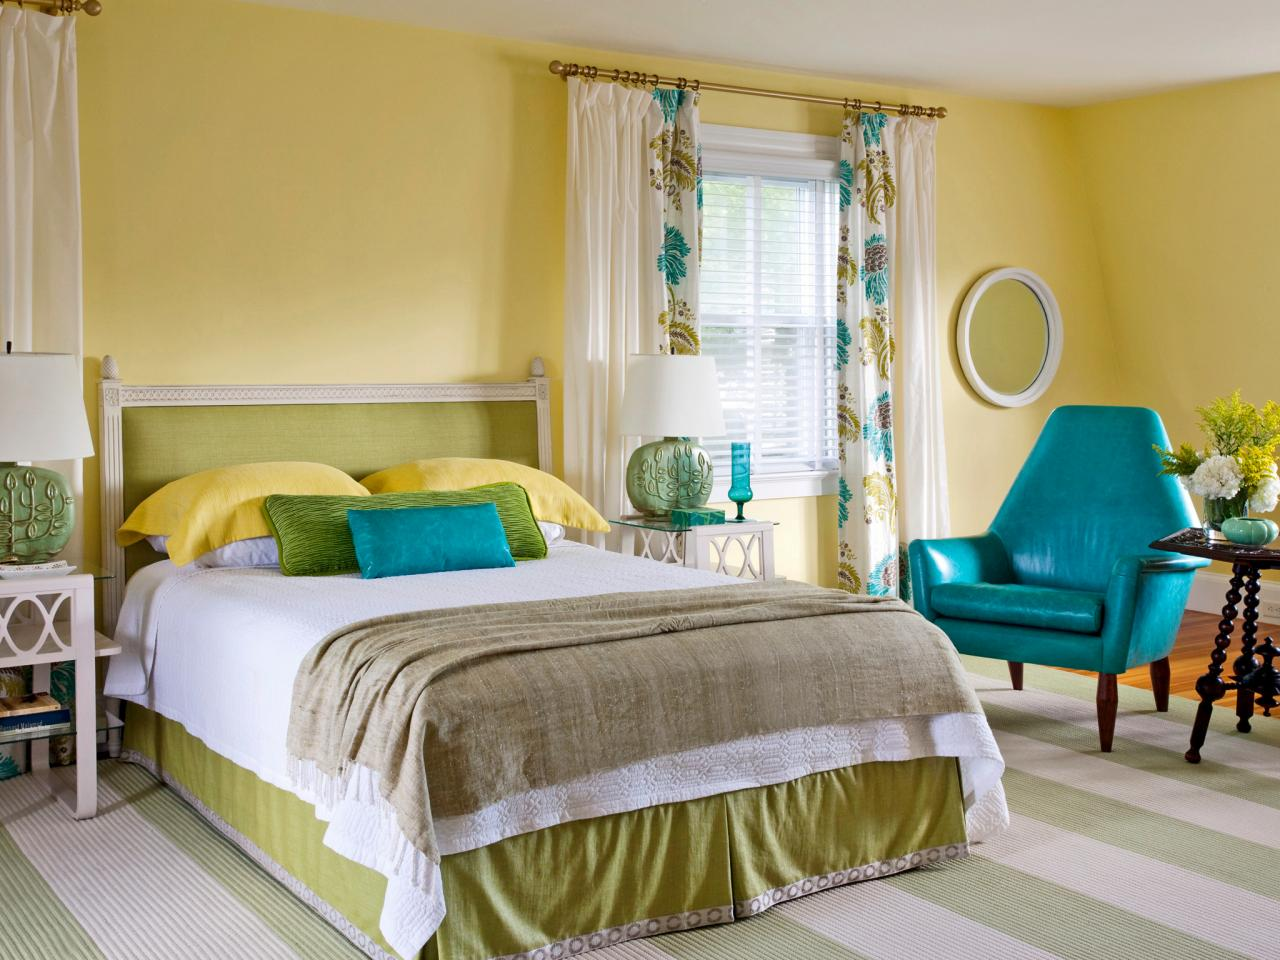 15 cheery yellow bedrooms bedrooms bedroom decorating Yellow room design ideas